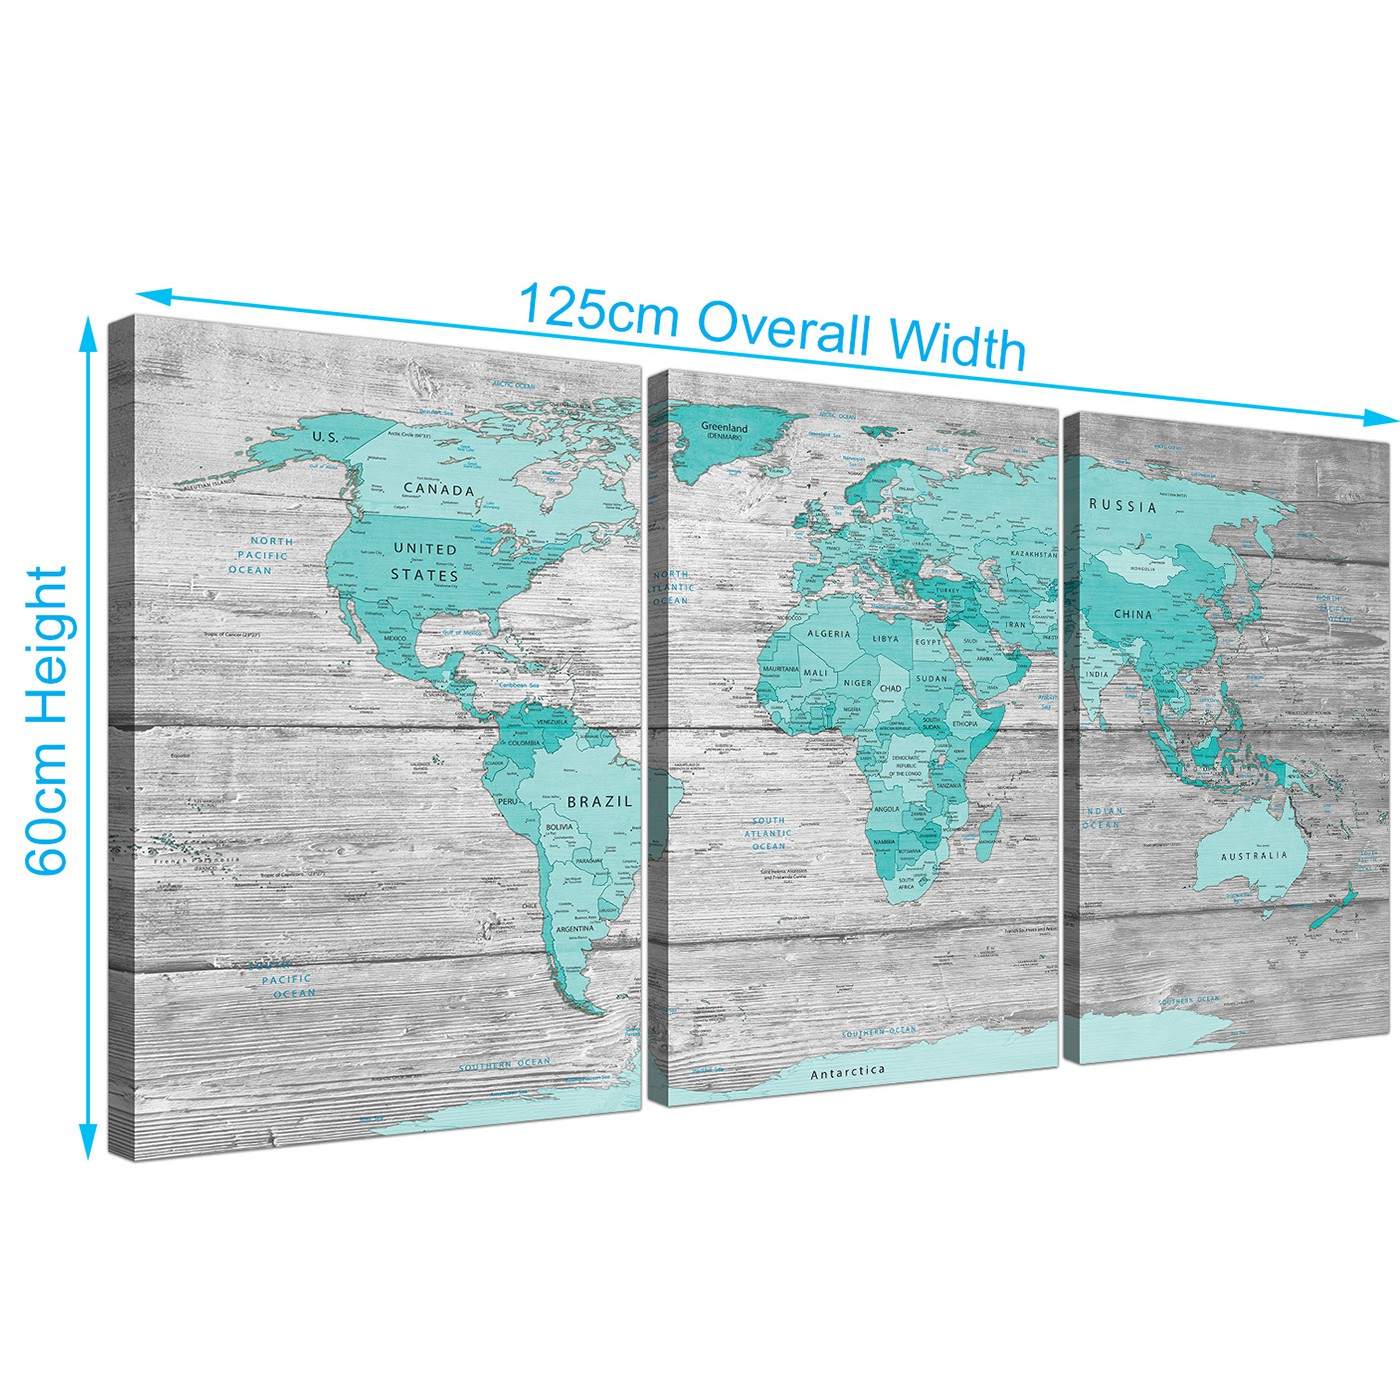 Large teal grey map of world atlas canvas print multi 3 panel 3299 panoramic large teal grey map of world atlas maps canvas split 3 part 3299 for your display gallery item 3 cheap large teal grey map of world atlas gumiabroncs Image collections